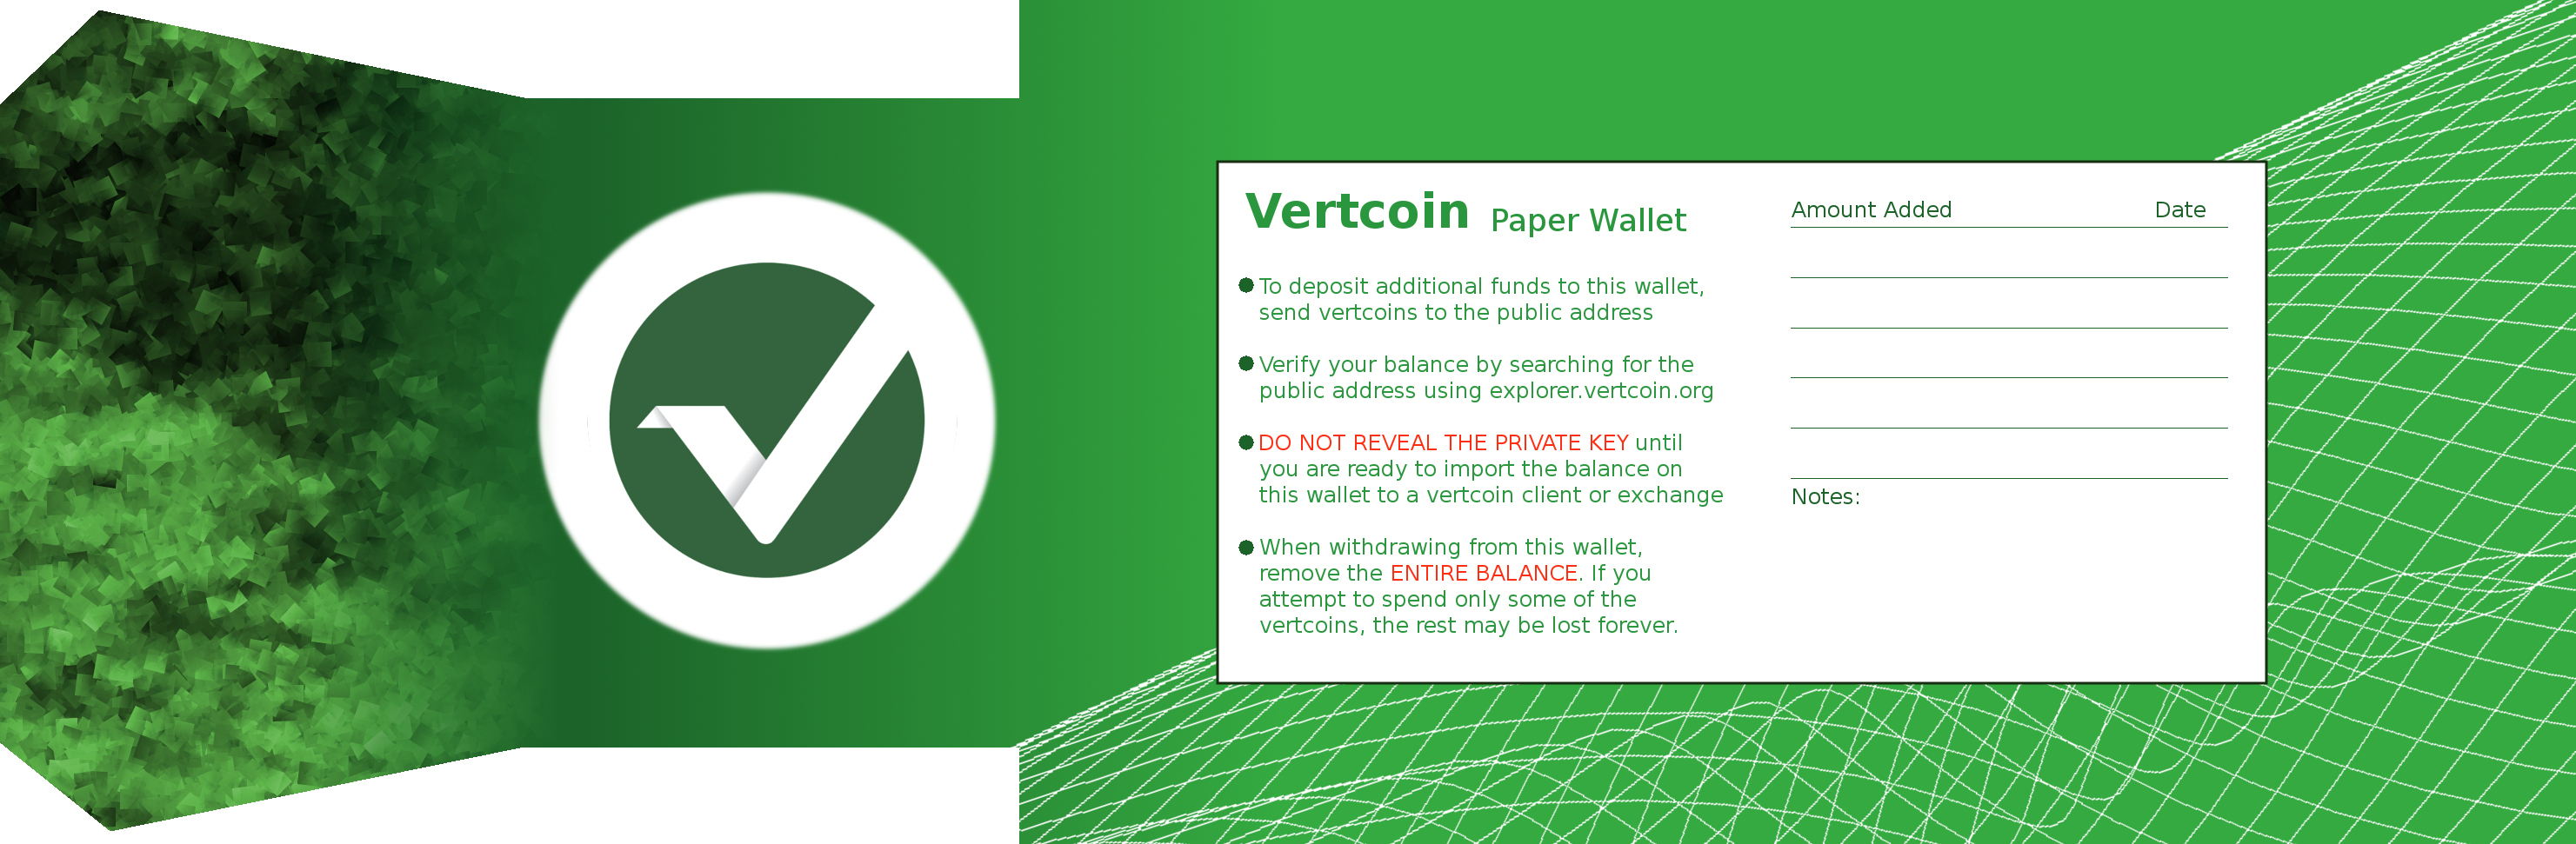 how to make a vertcoin paper wallet